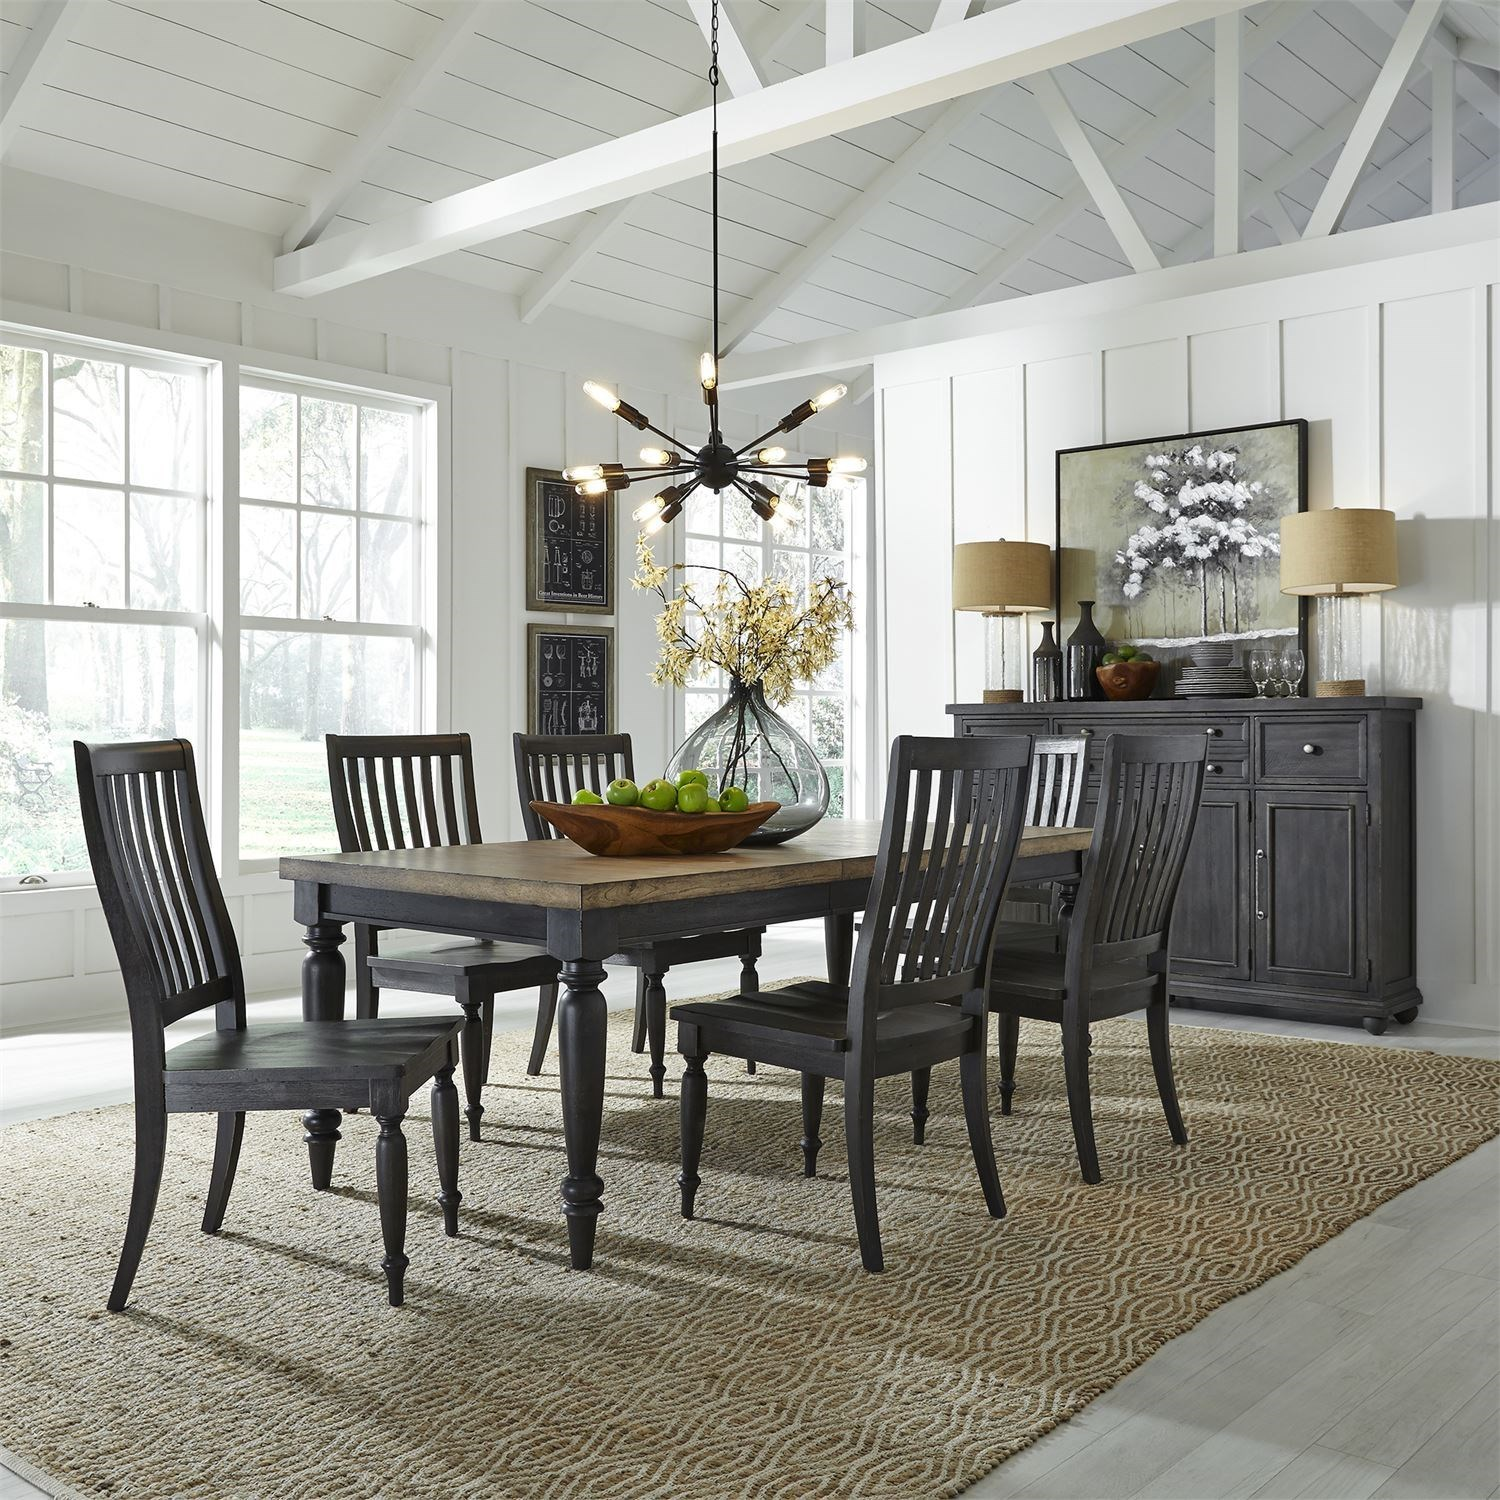 Harvest Home Formal Dining Room Group by Liberty Furniture at Northeast Factory Direct